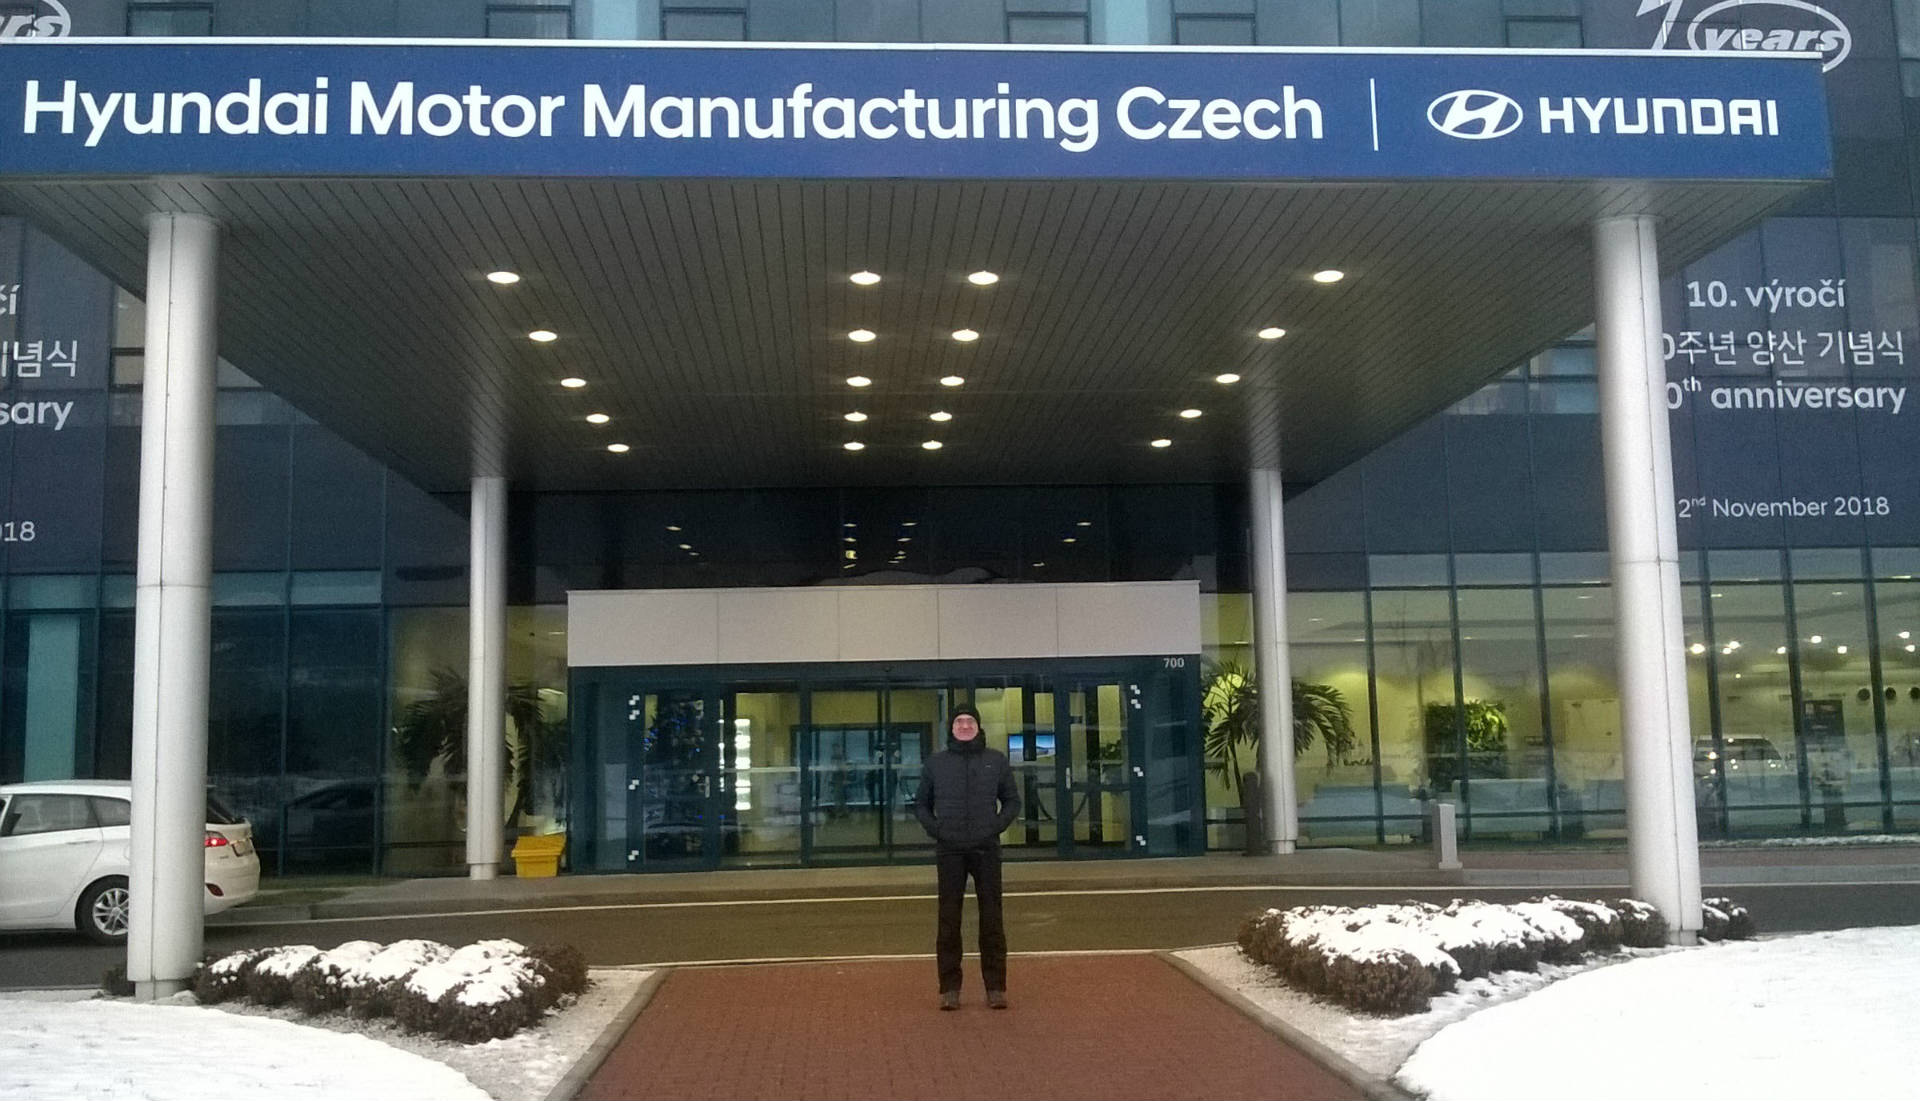 Exkurze Hyundai Motor Manufacturing Czech Nošovice, Science and Technology Center Ostrava - Obrázek 2